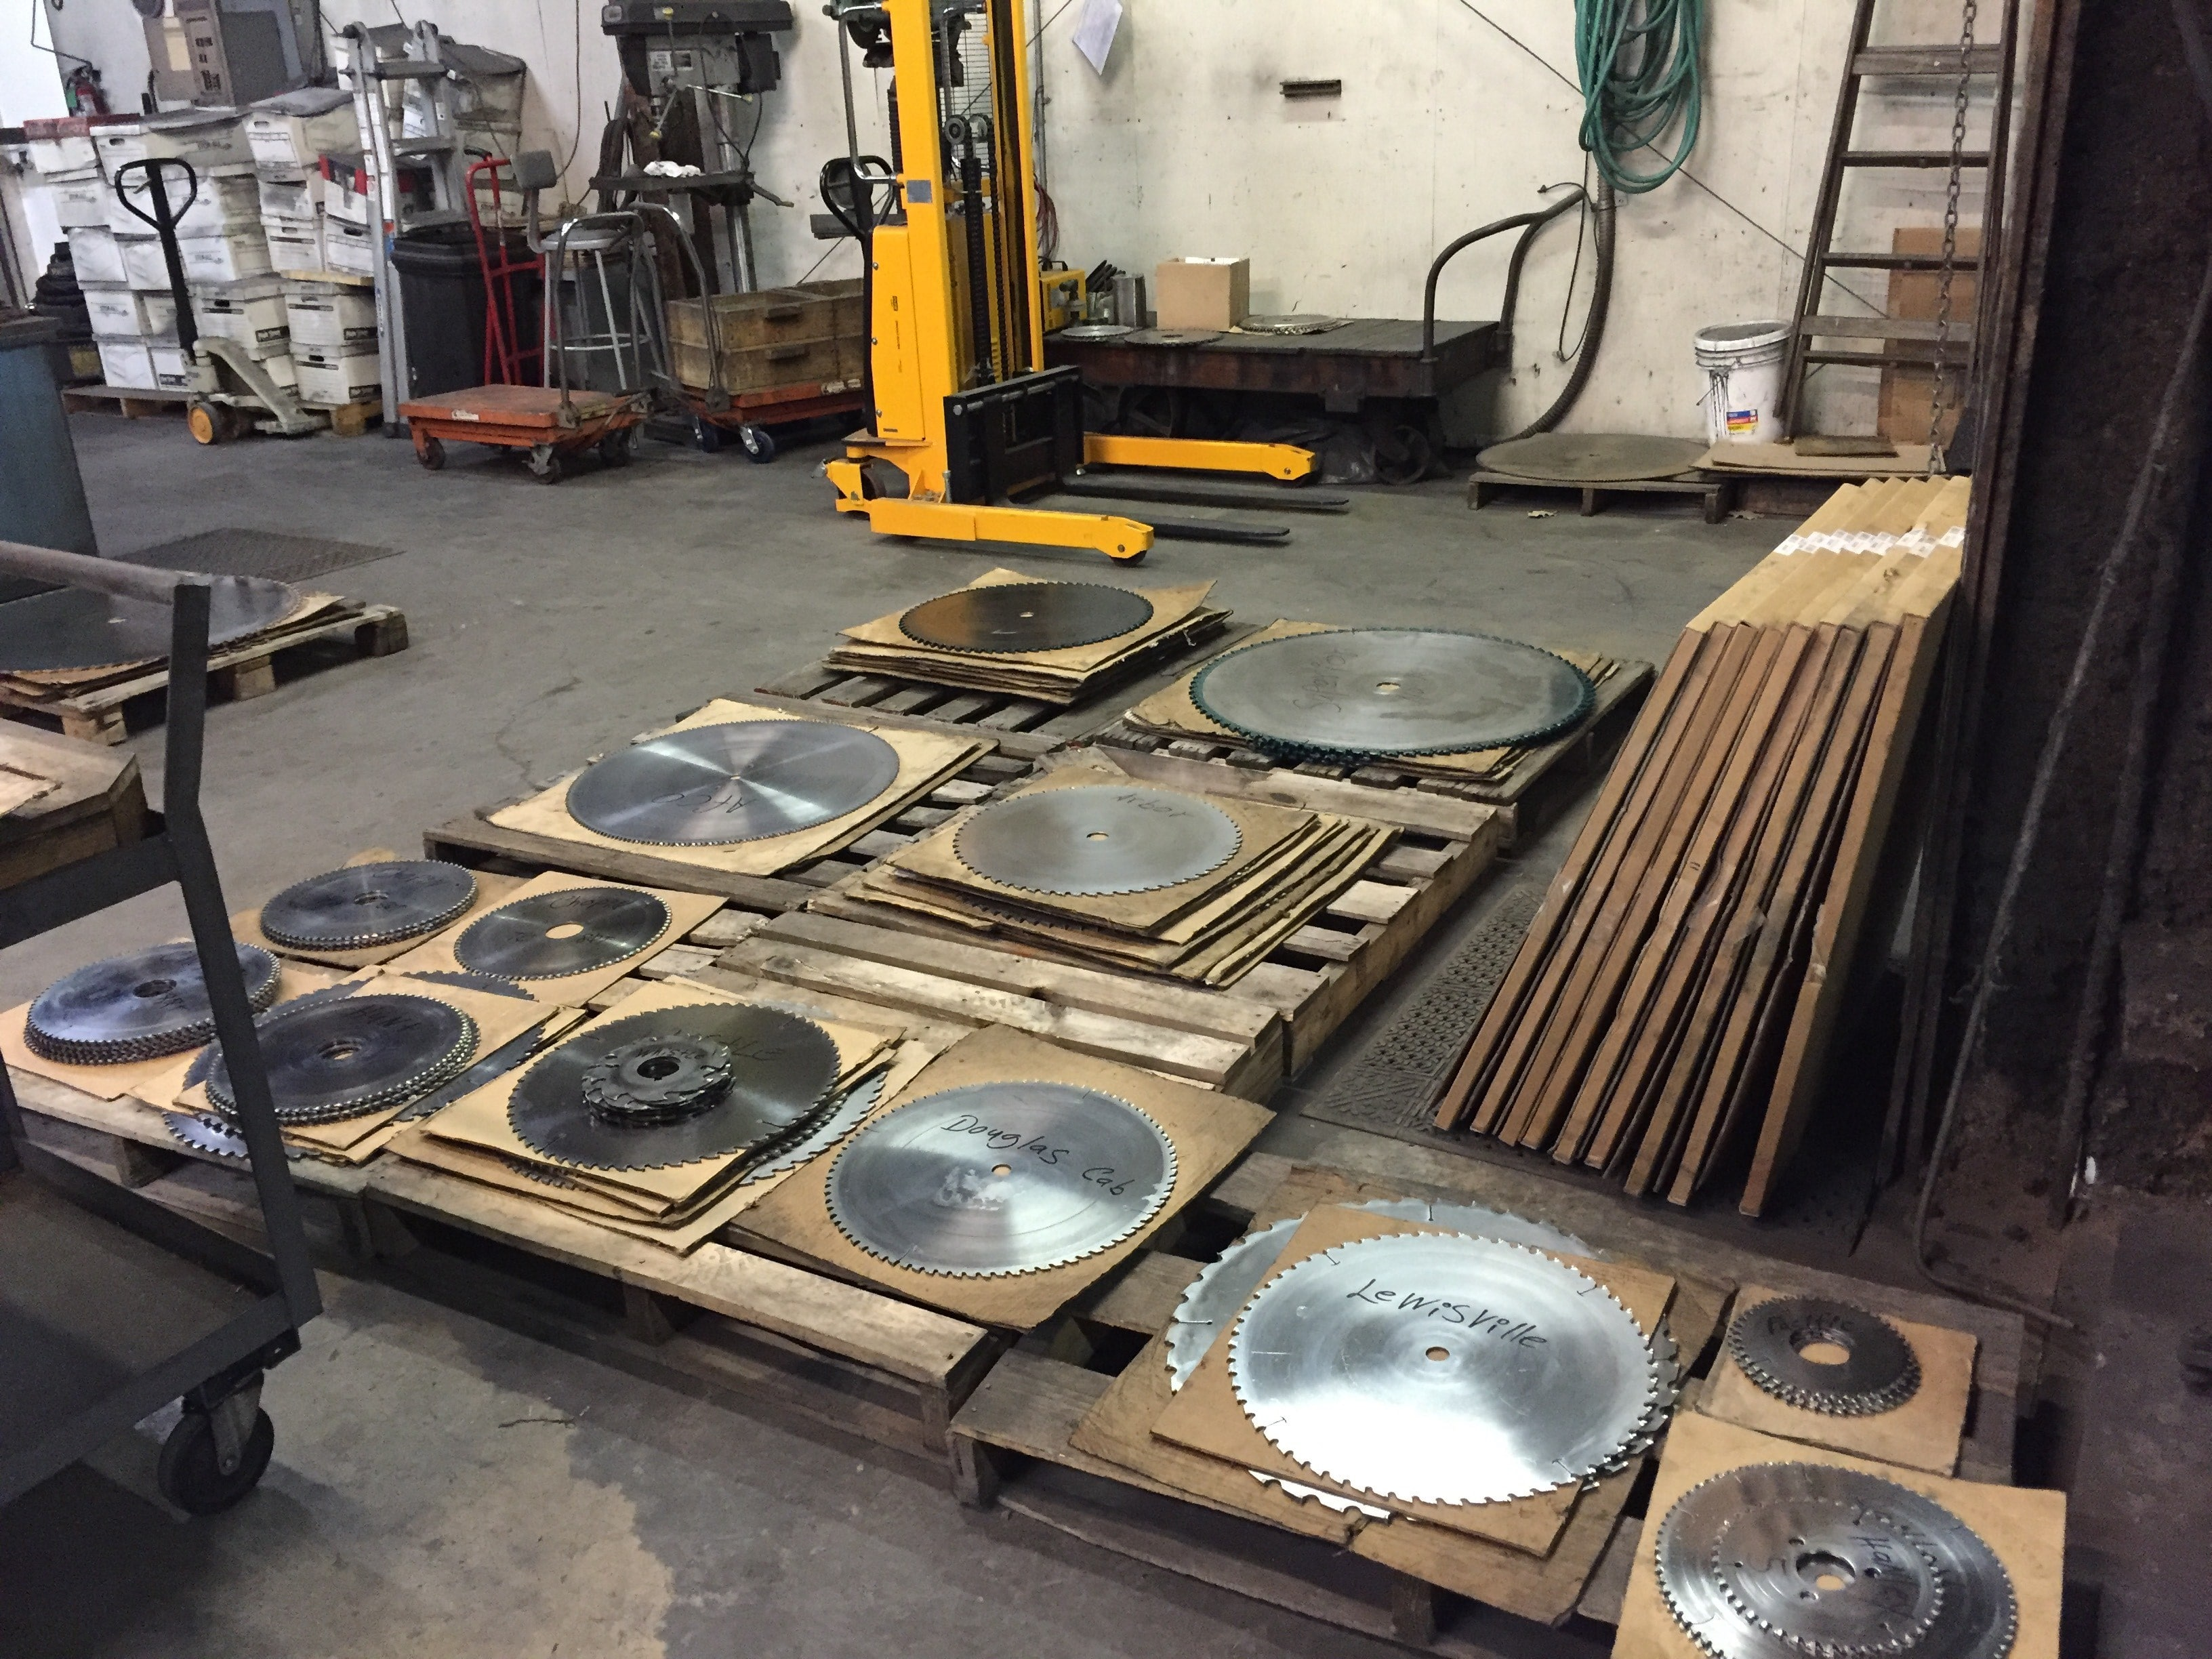 Saw Blades Inventory Control and Management | Southern Carbide